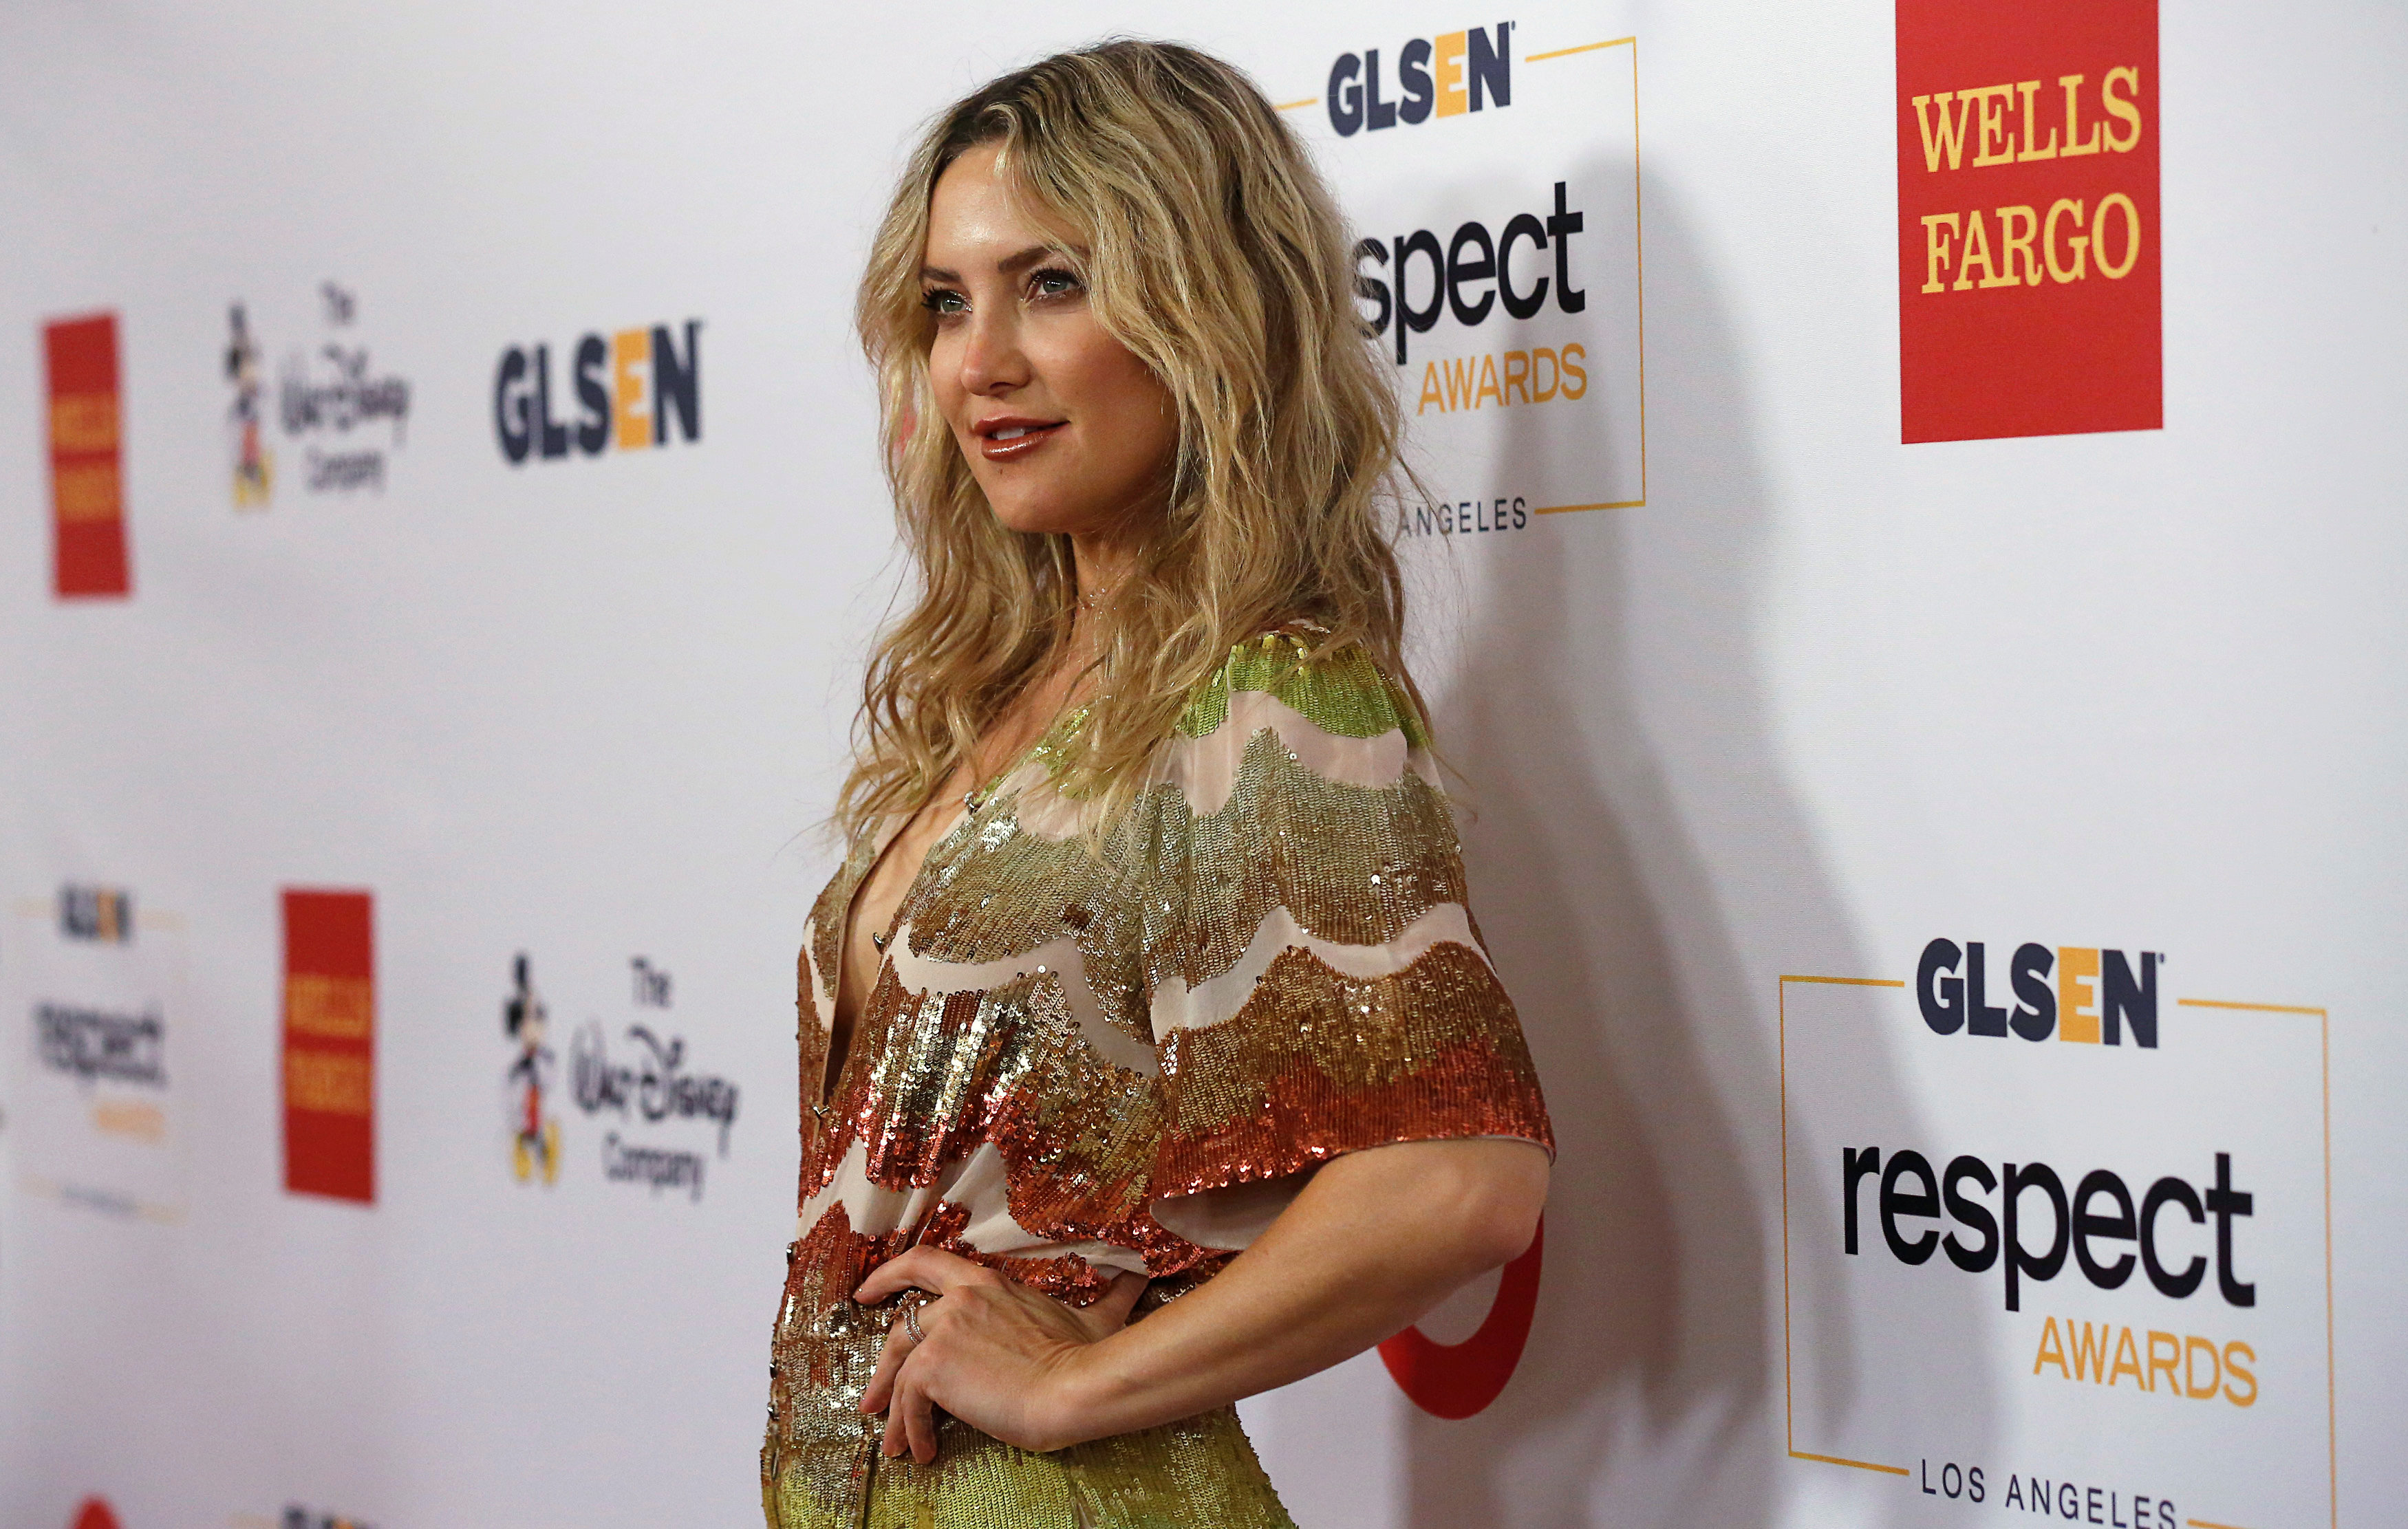 Actor and honoree Kate Hudson poses at the 2016 GLSEN Respect Awards u00d0 Los Angeles at the Beverly Wilshire hotel in Beverly Hills, California U.S., October 21, 2016.   REUTERS/Mario Anzuoni